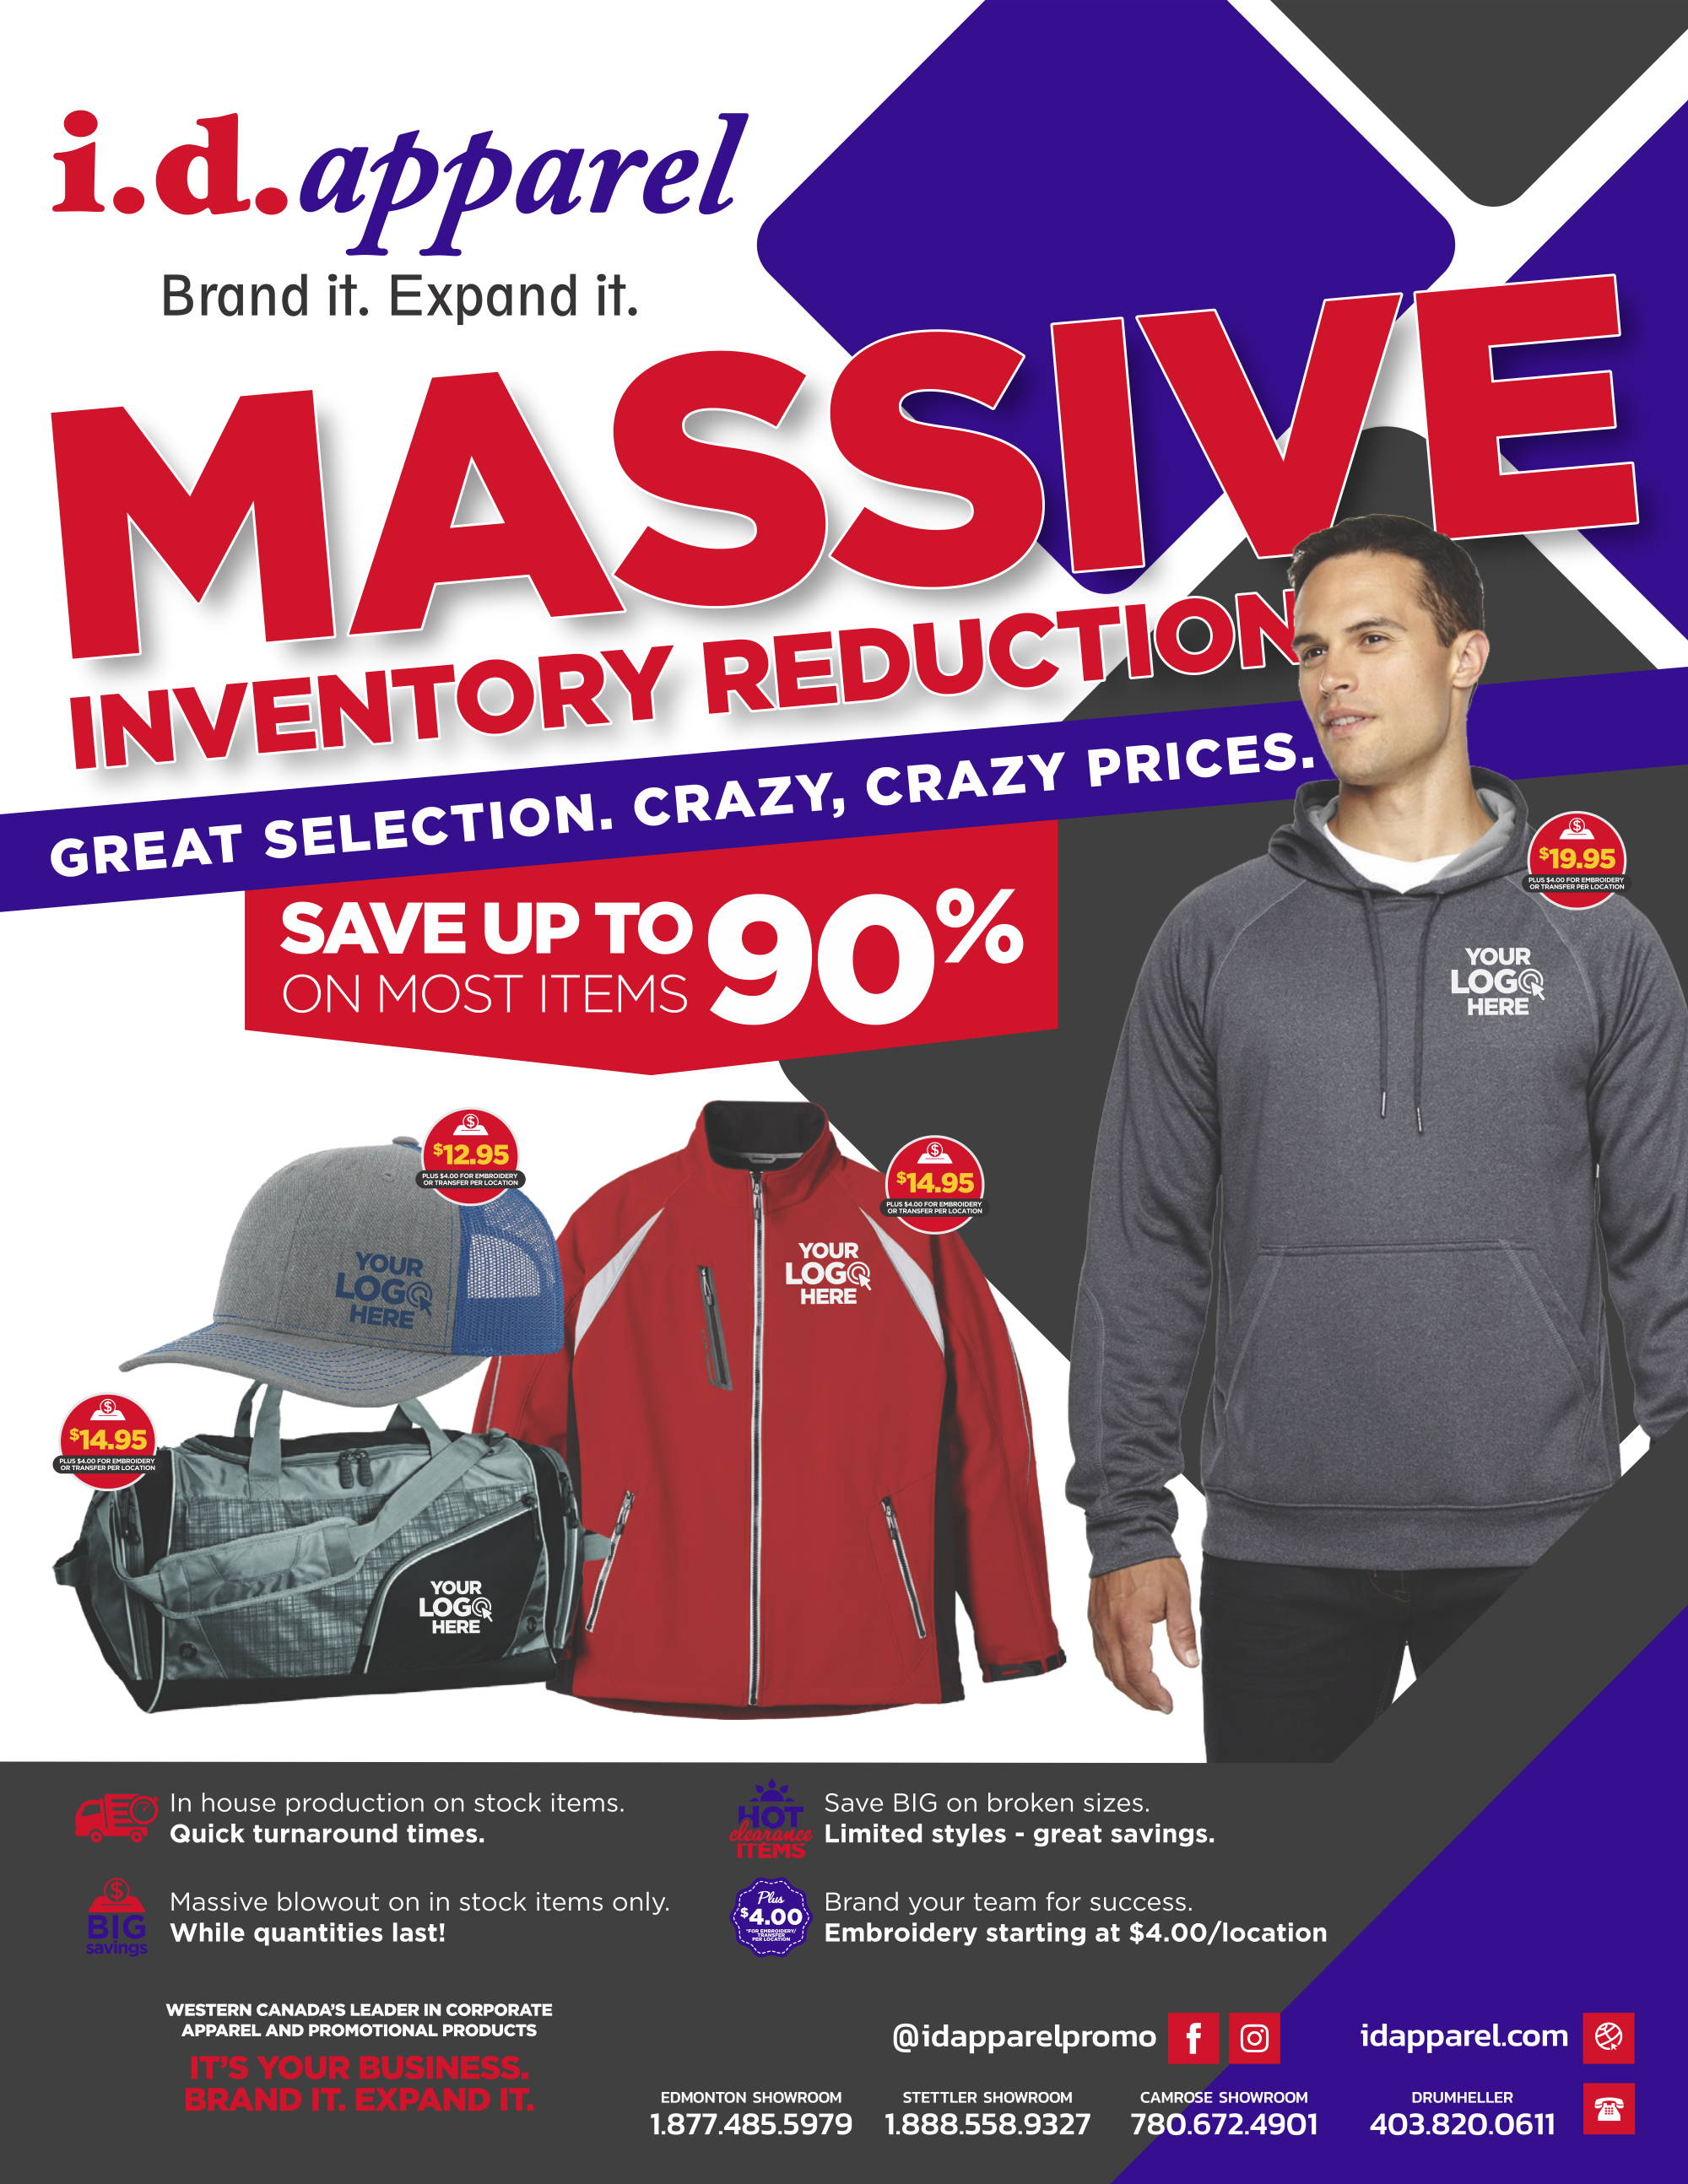 2020 Inventory Reduction Sale